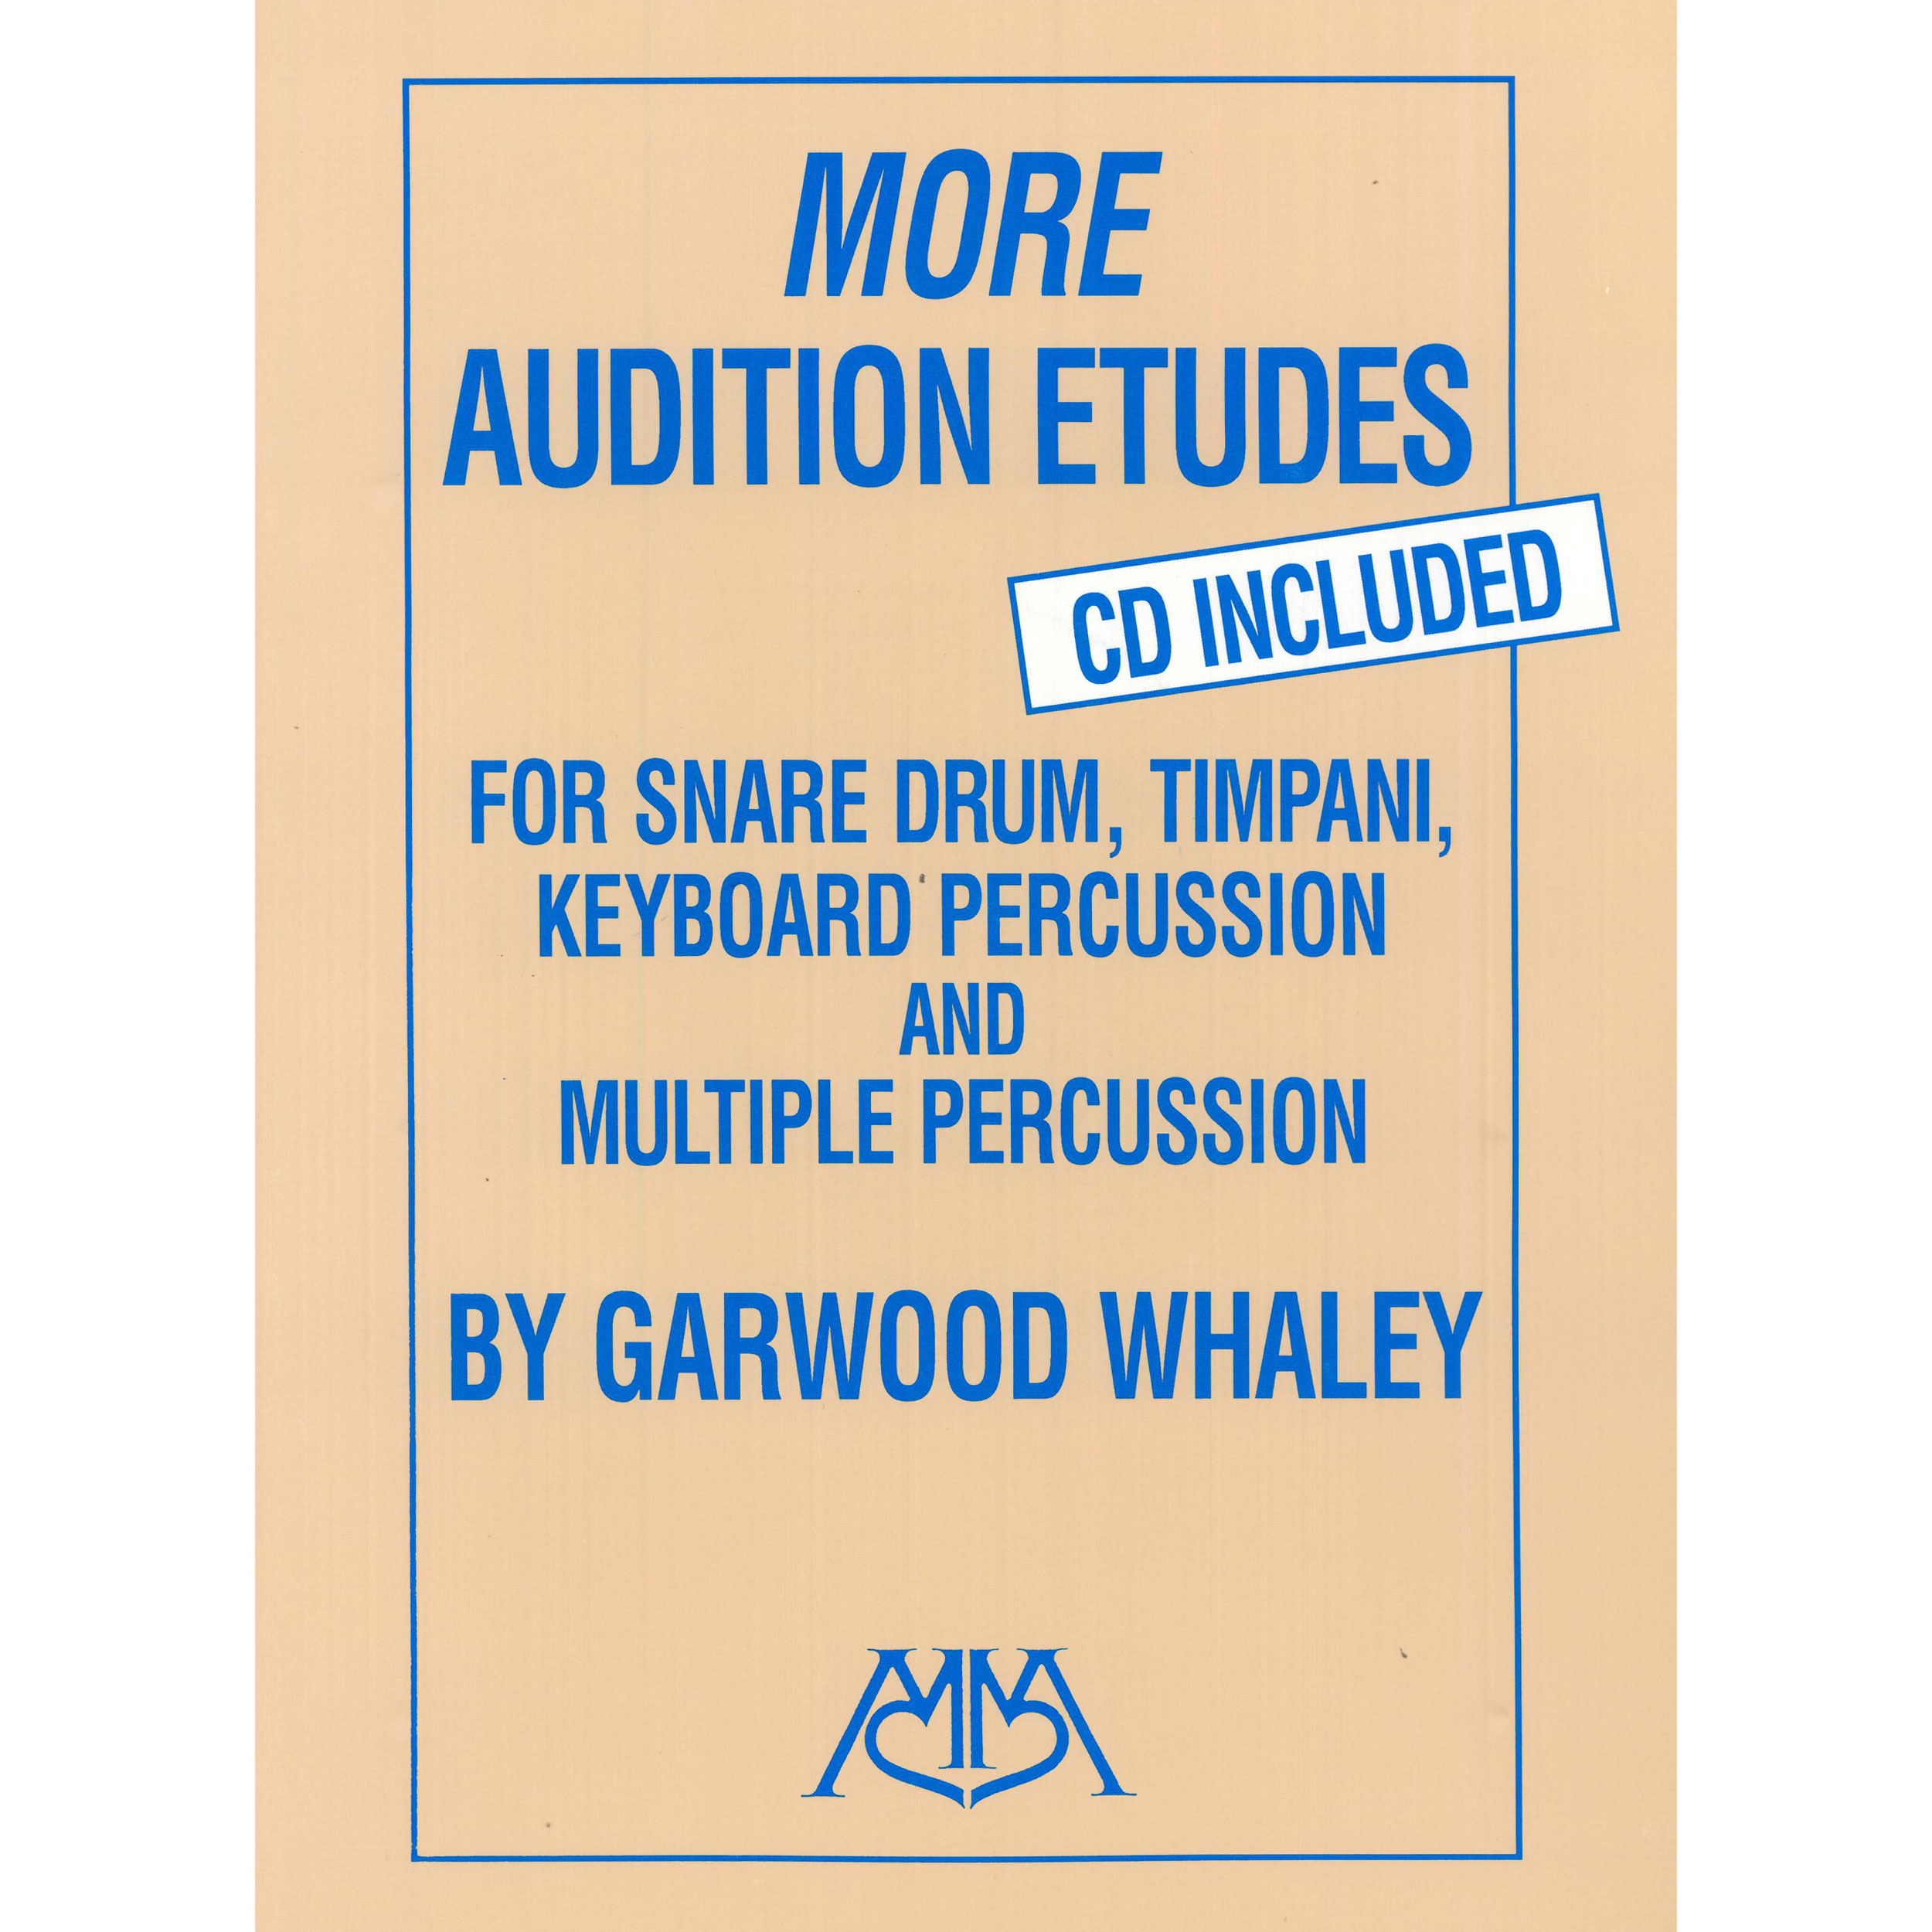 More Audition Etudes by Garwood Whaley (with CD)